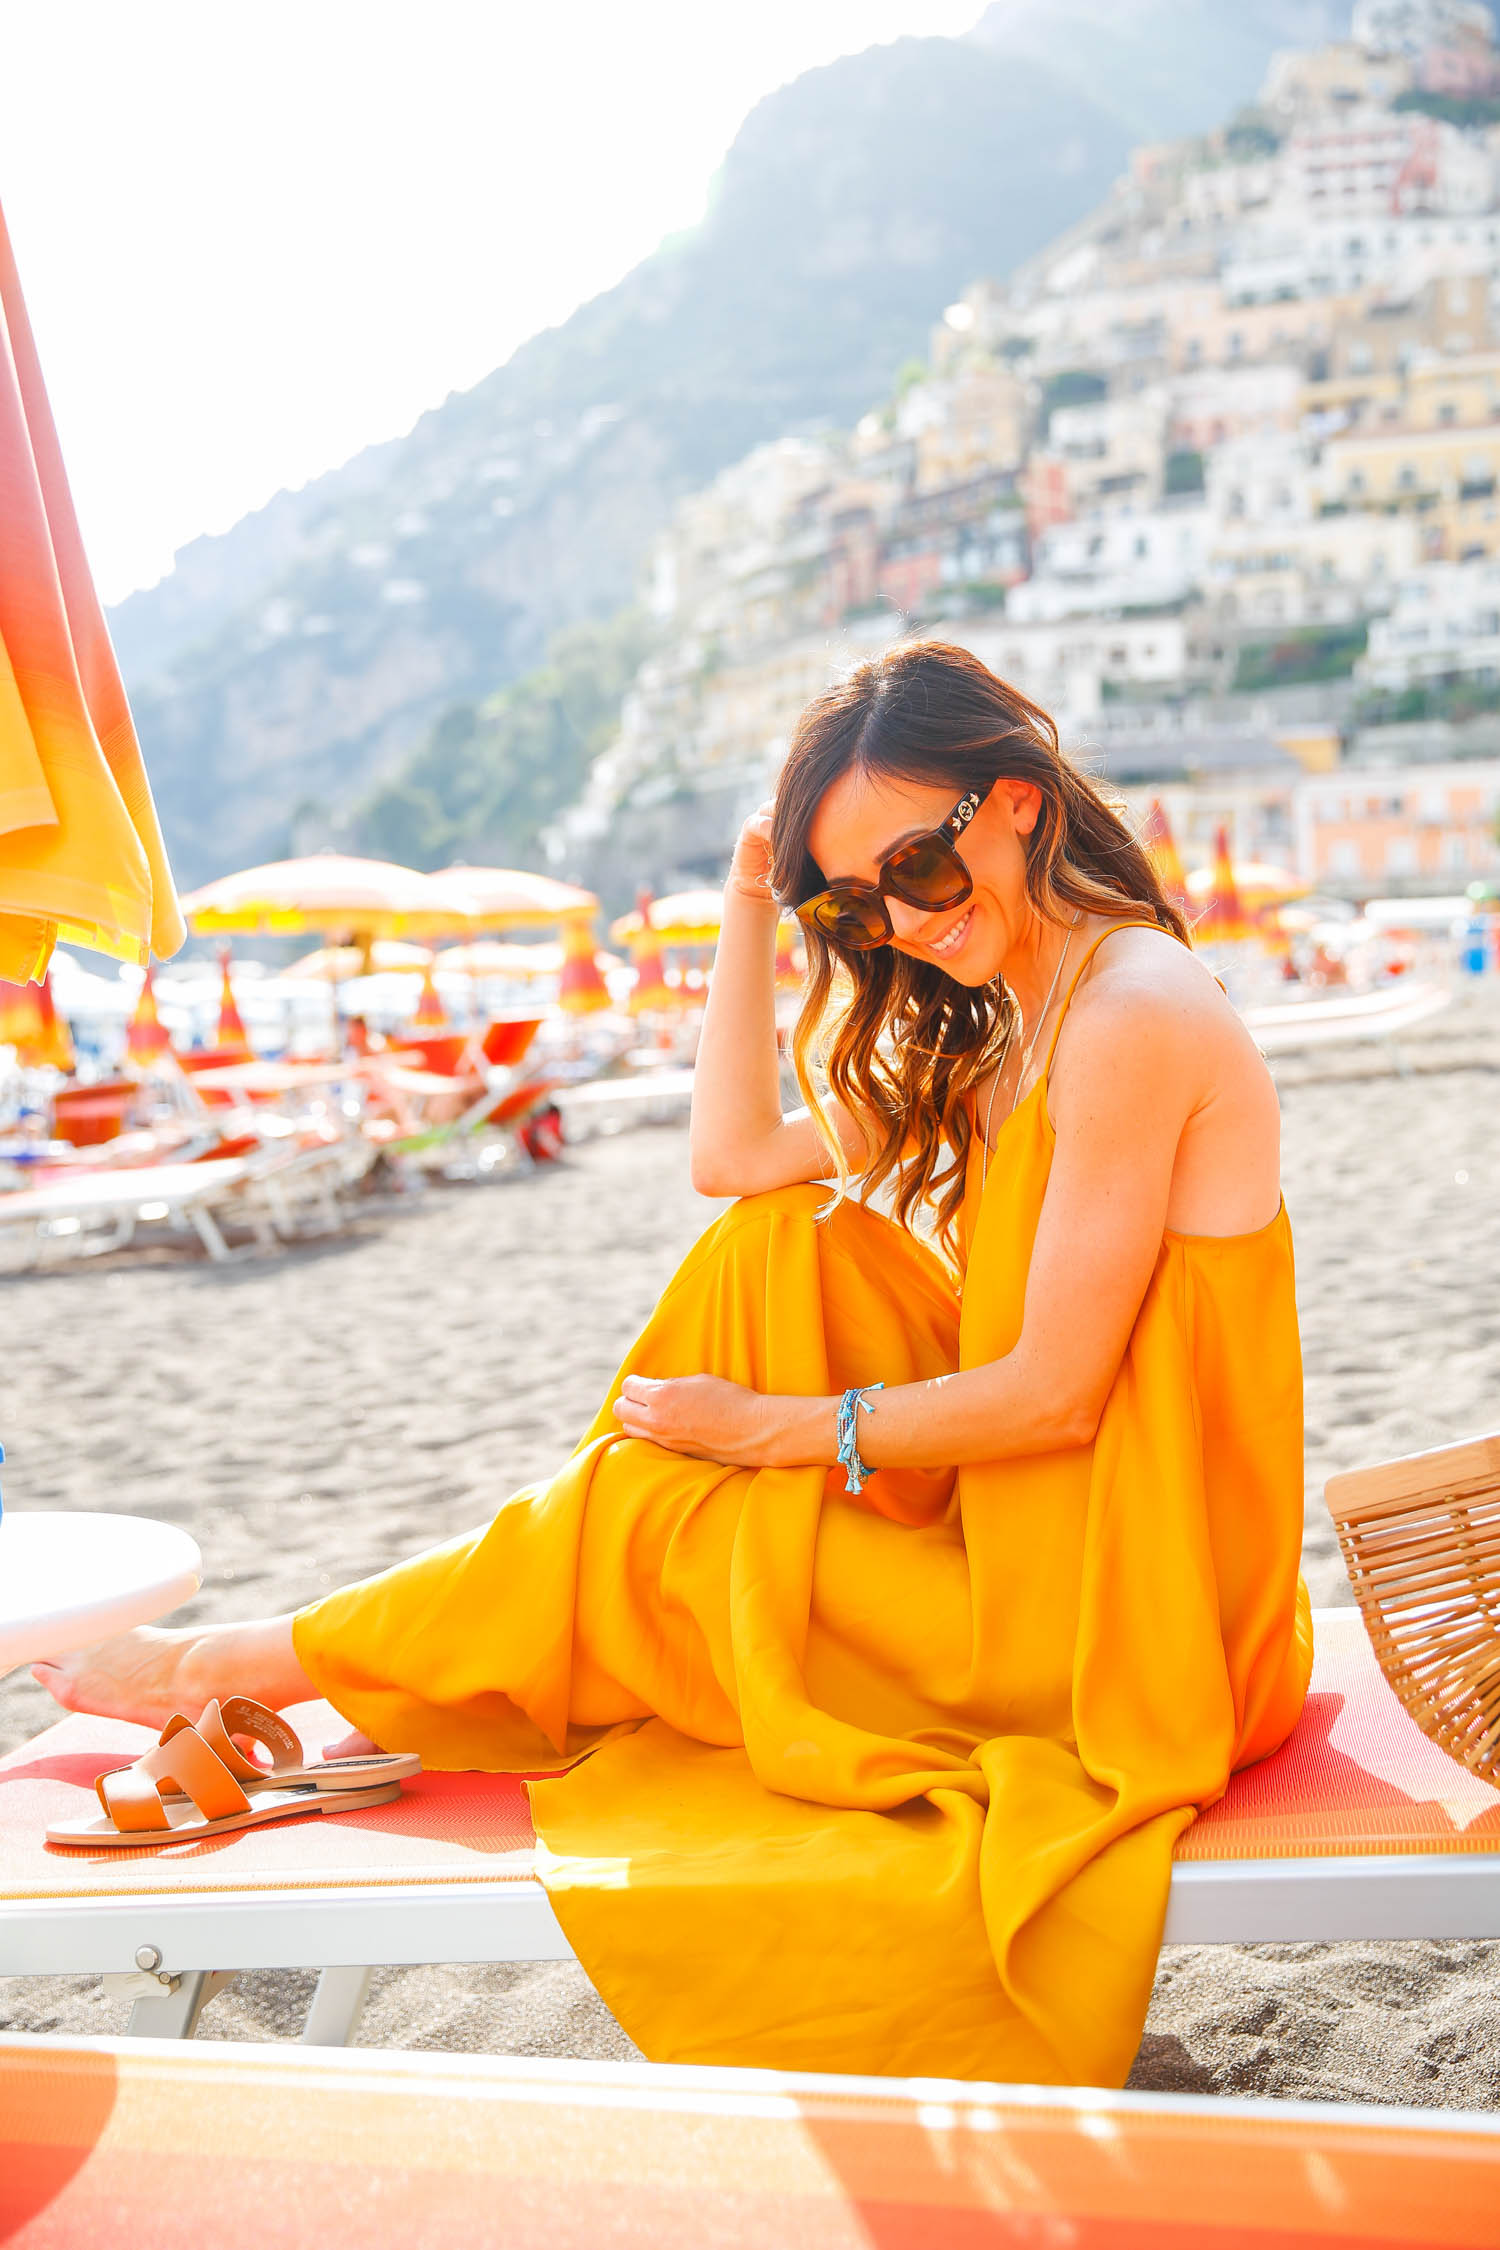 positano, positano beach, amalfi coast, what to wear in positano